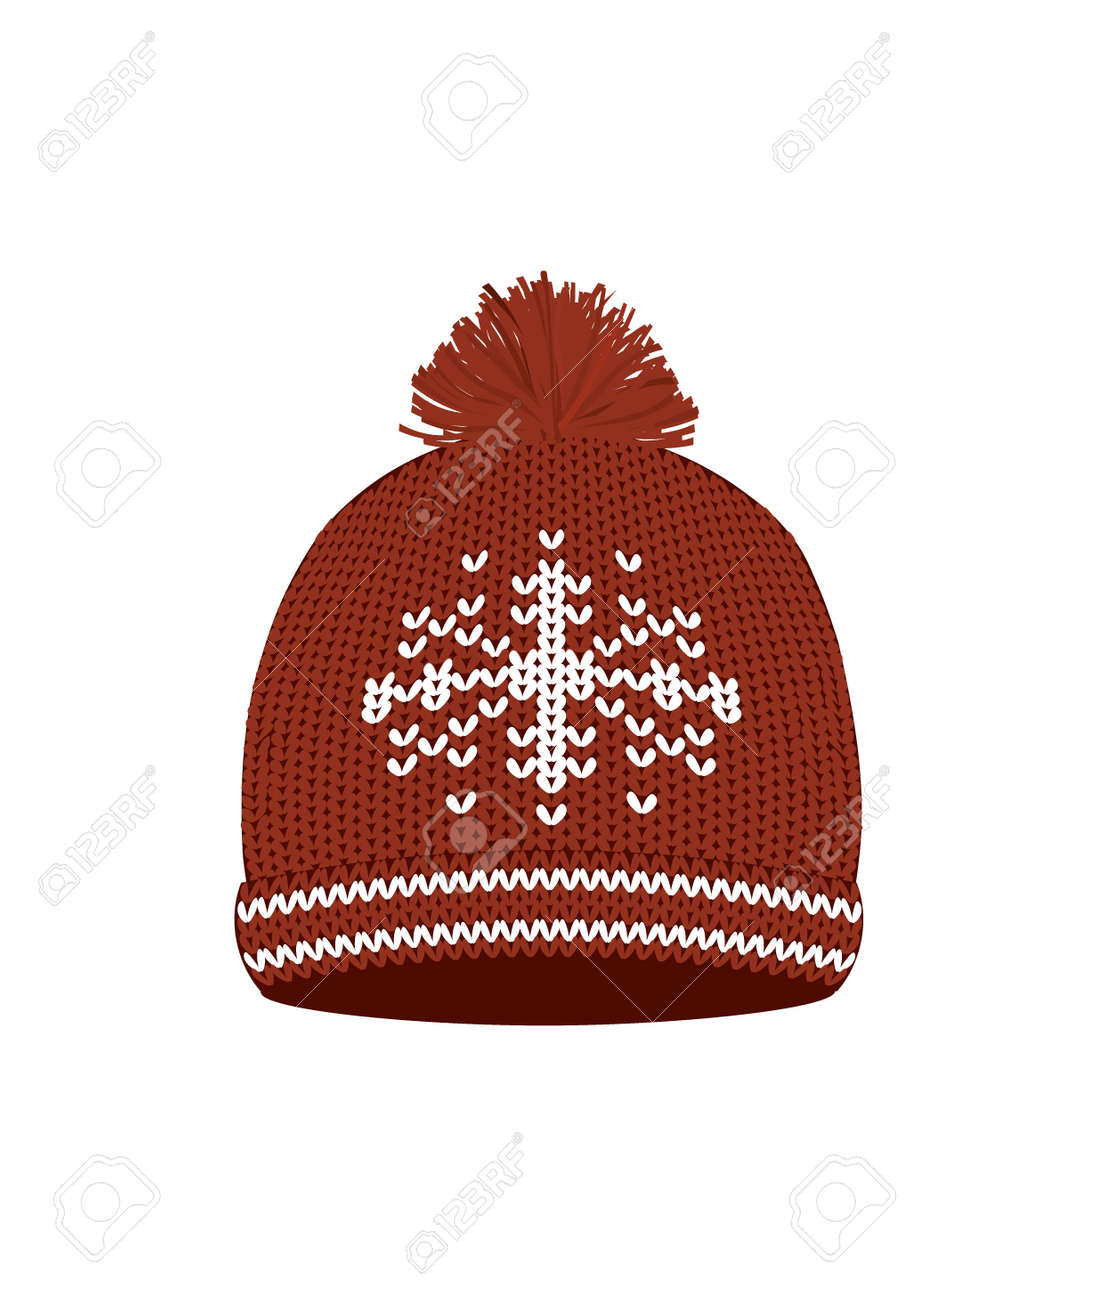 Red knitted winter hat. vector illustration - 163881716